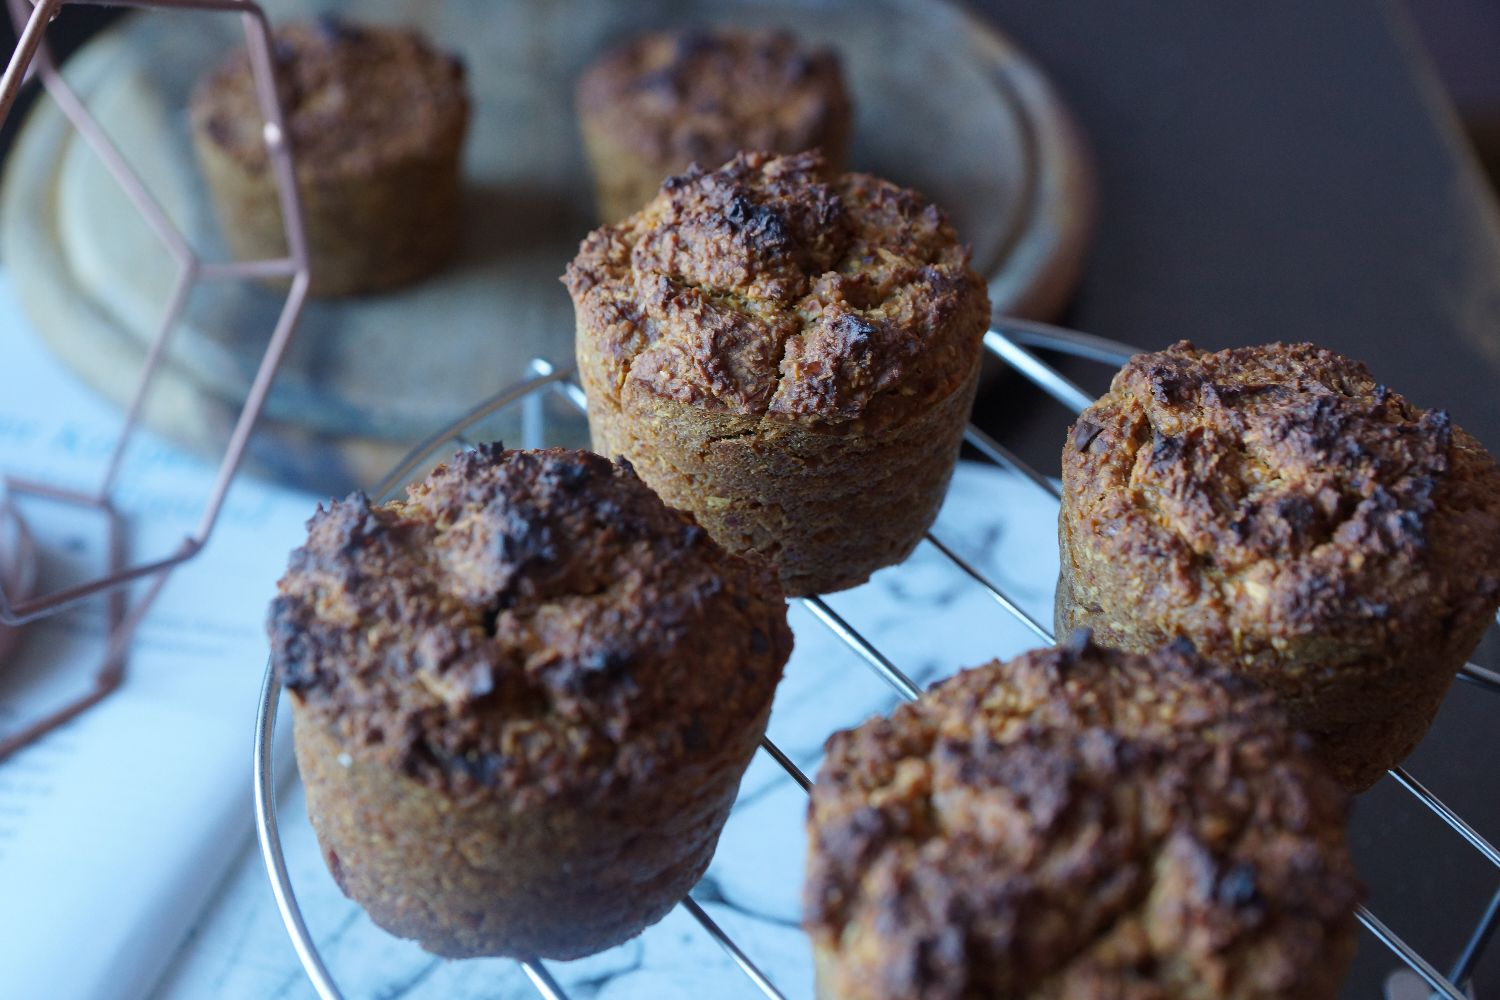 apple muffins with a chocolate center | apfelmuffins mit schokoladenkern